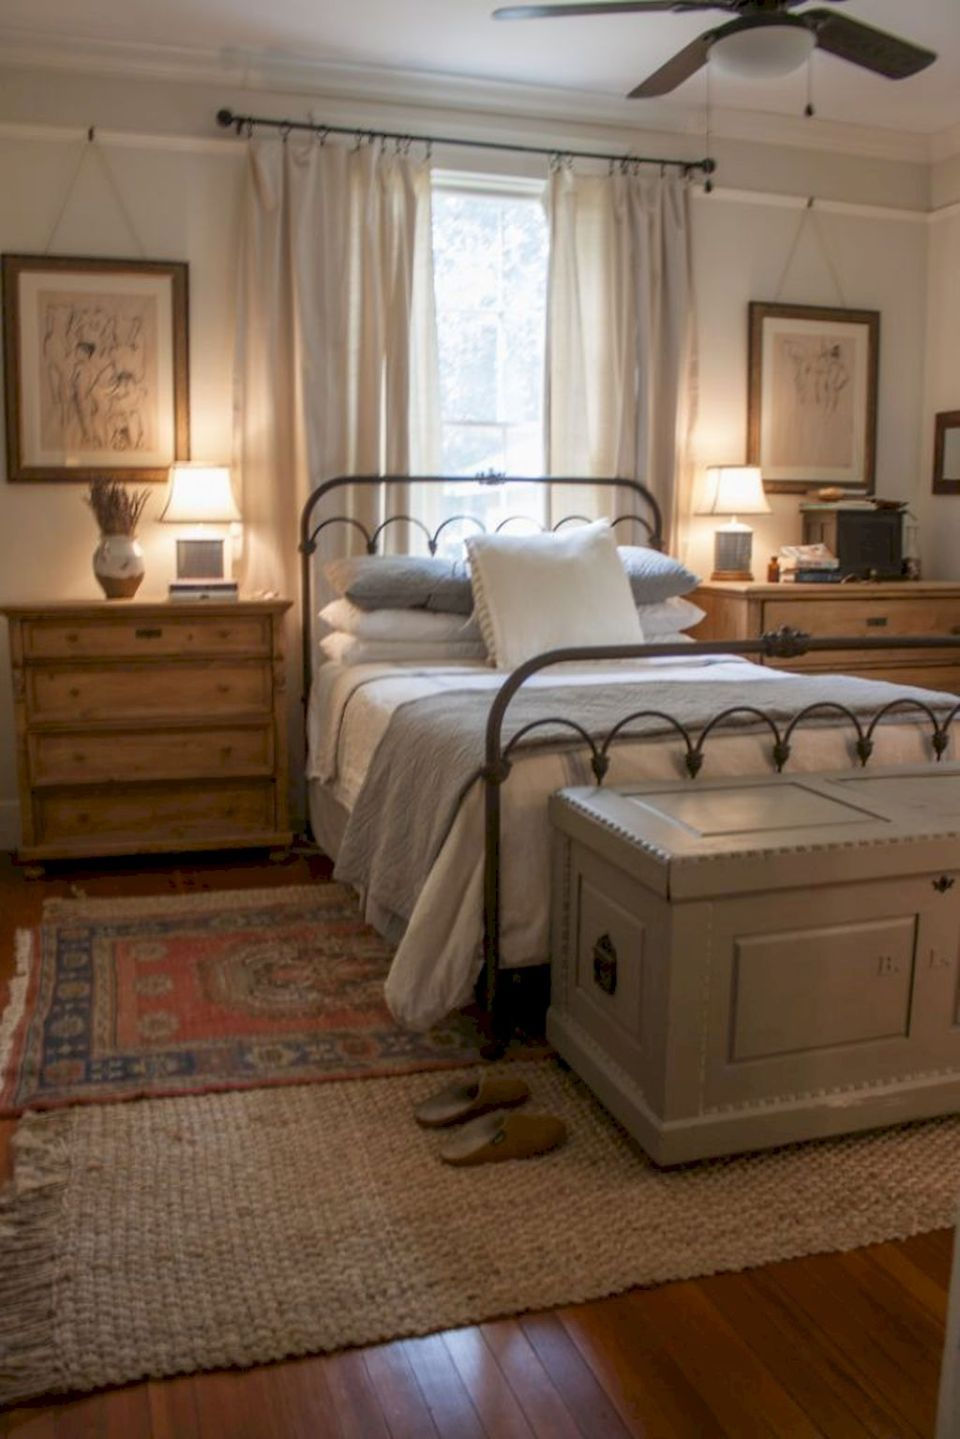 Hld Scope Cleaning Room Design: 65 Cozy Rustic Farmhouse Bedroom Remodel Ideas